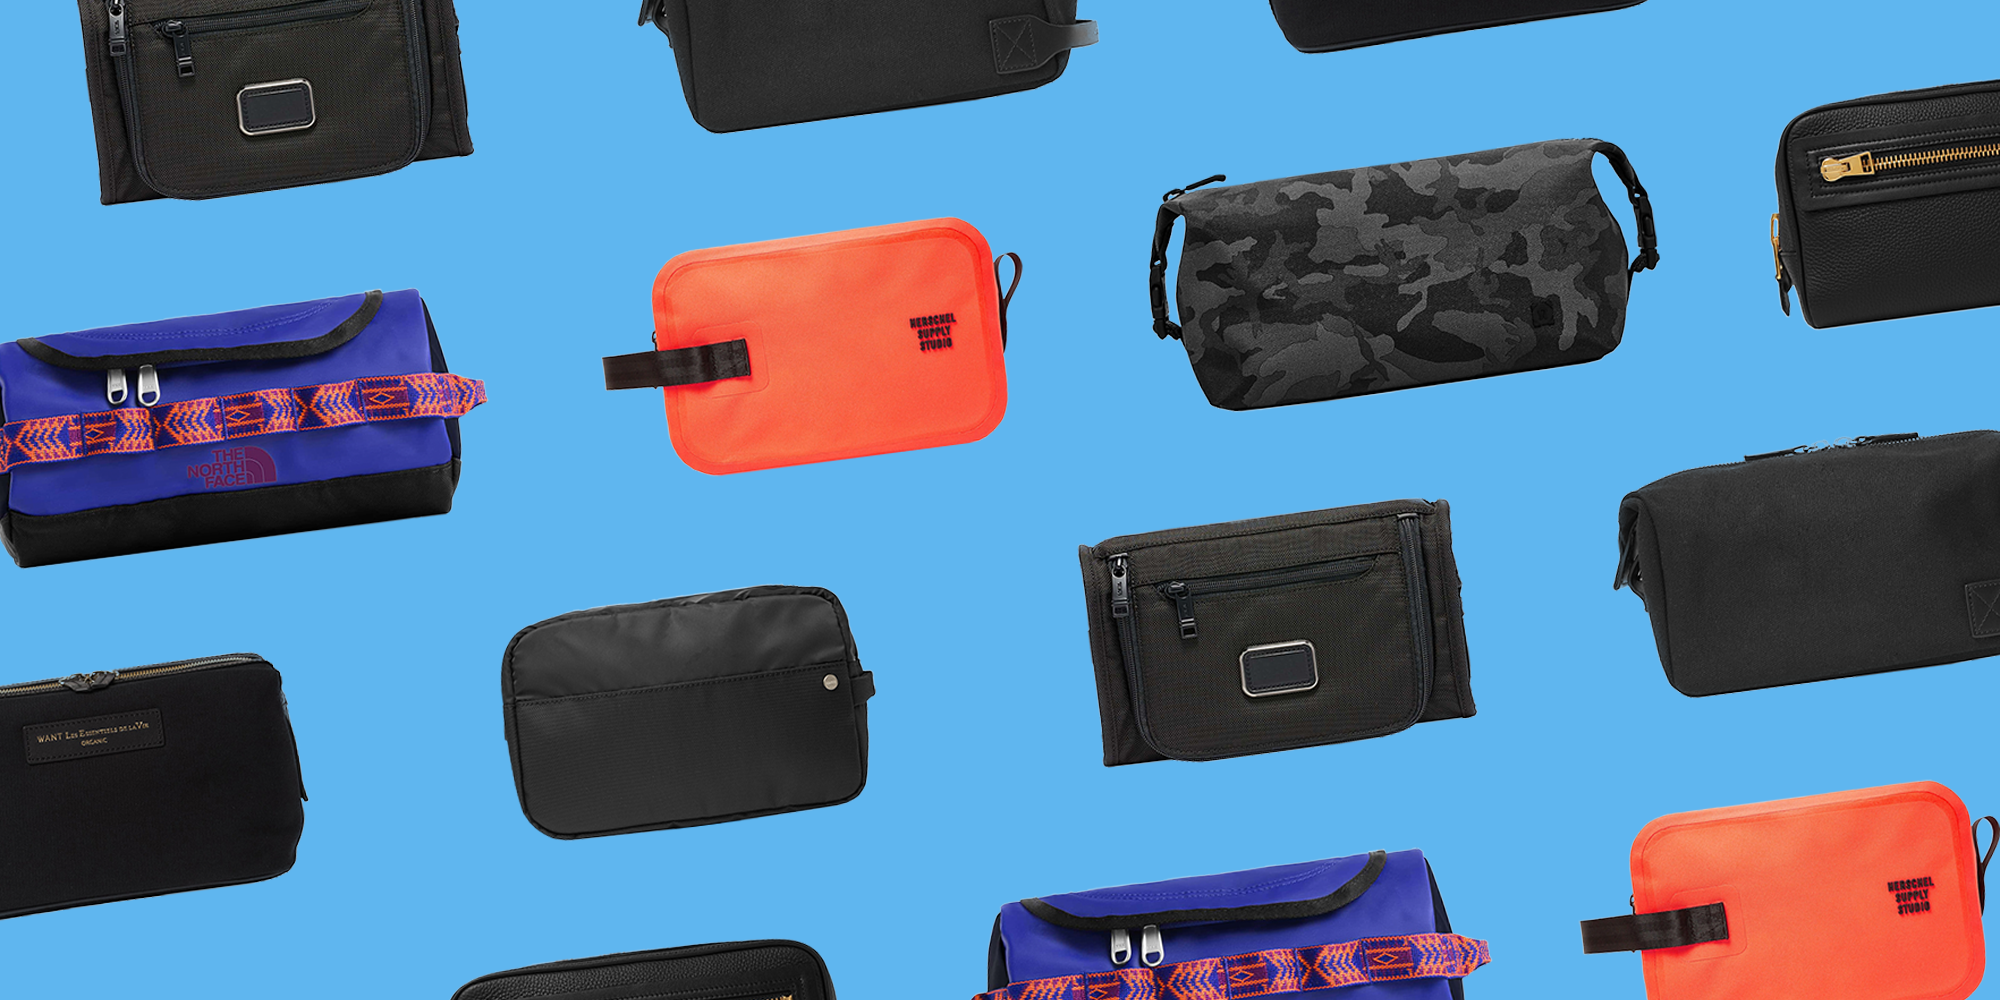 It's the one travel accessory you shouldn't be without.